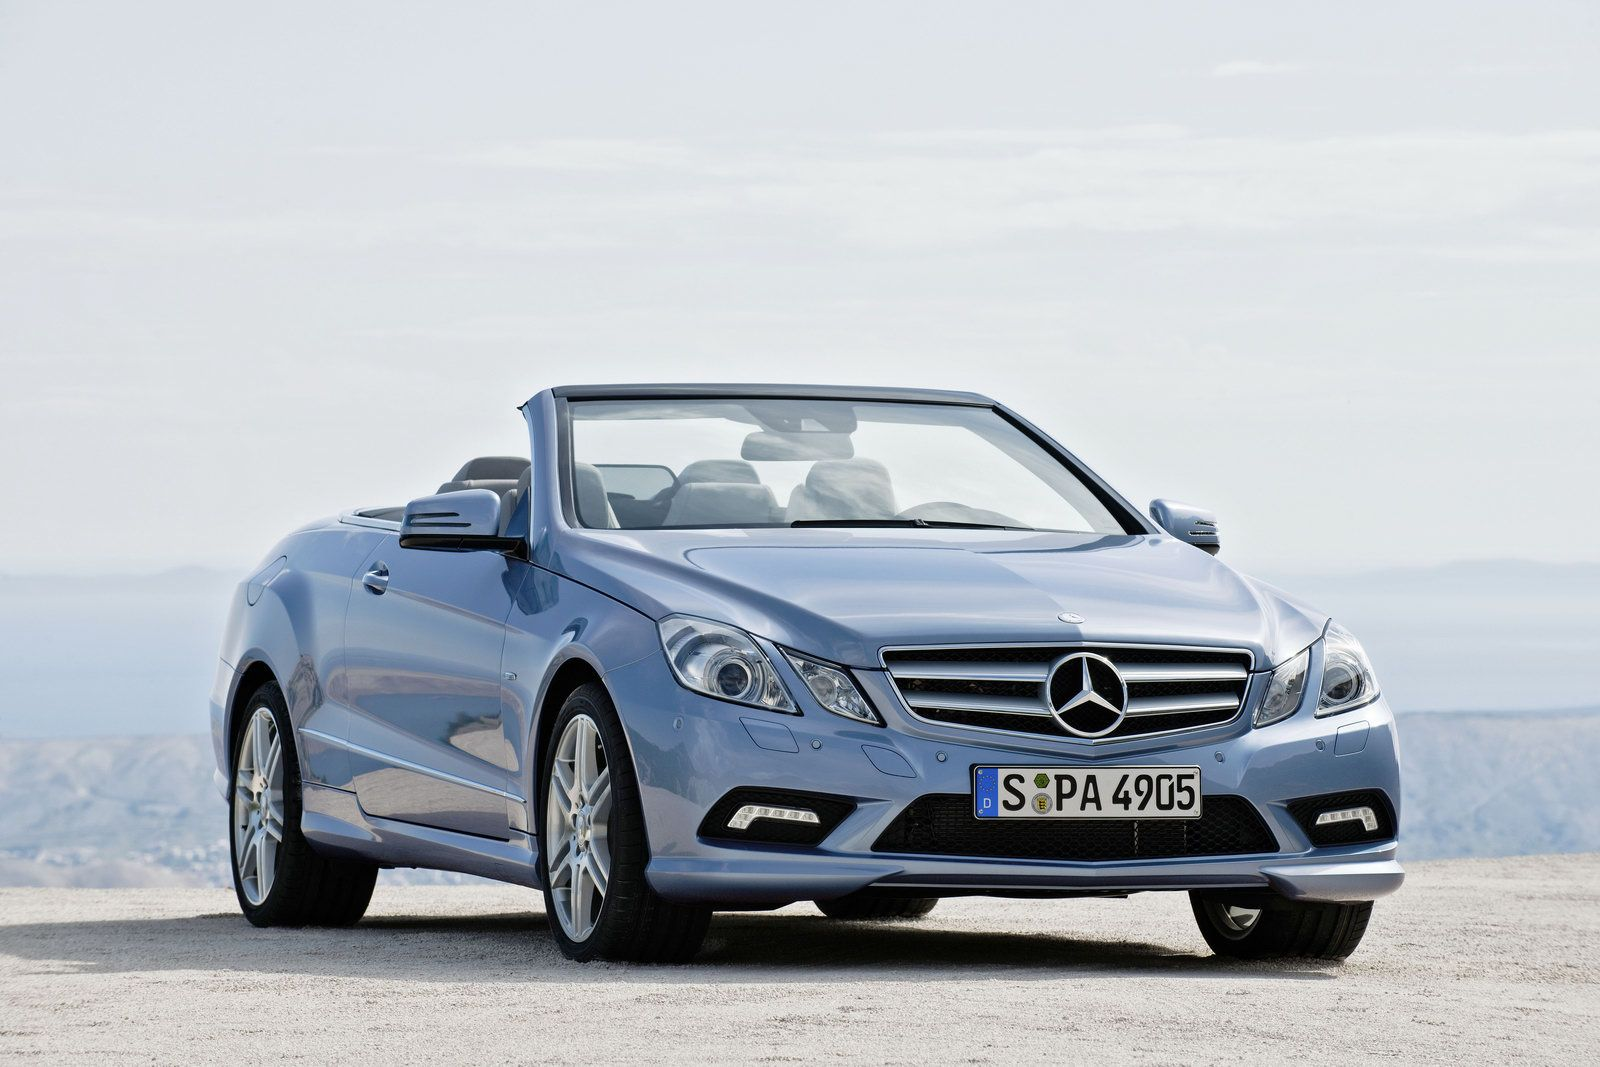 New 2010 mercedes e class convertible officially revealed for Mercedes benz e350 cabriolet